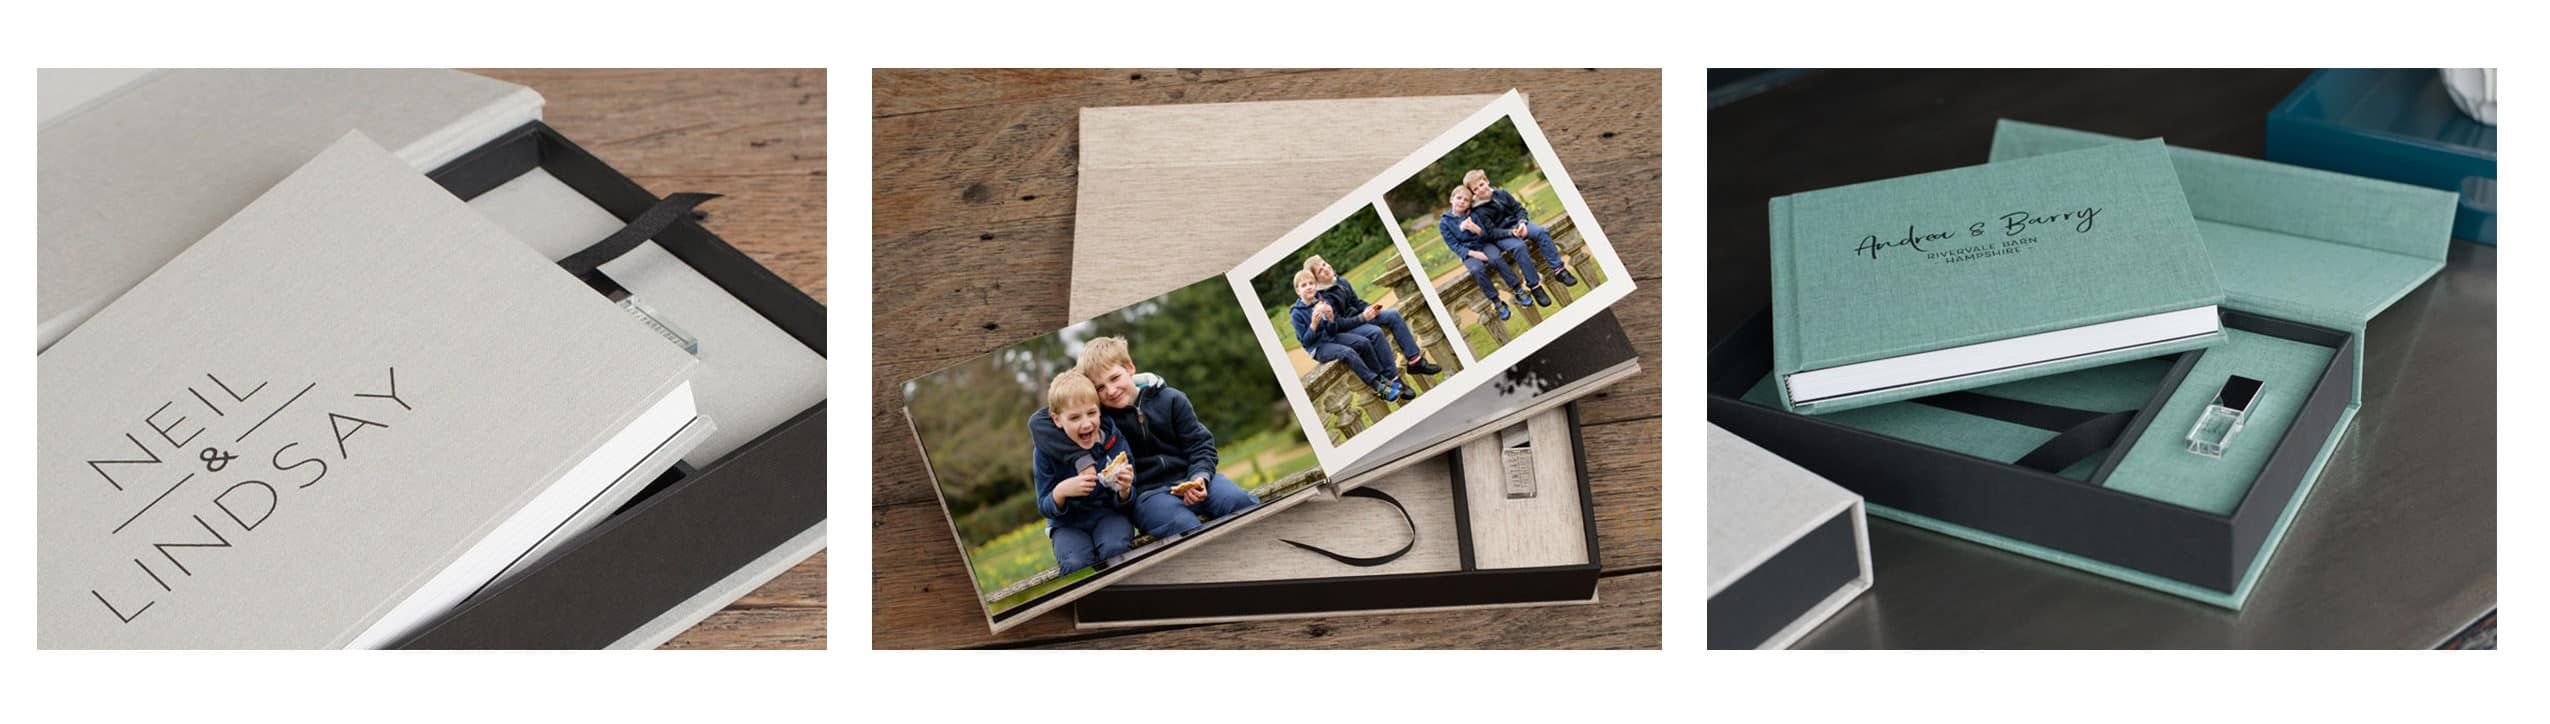 Digital album with usb for family photoshoots